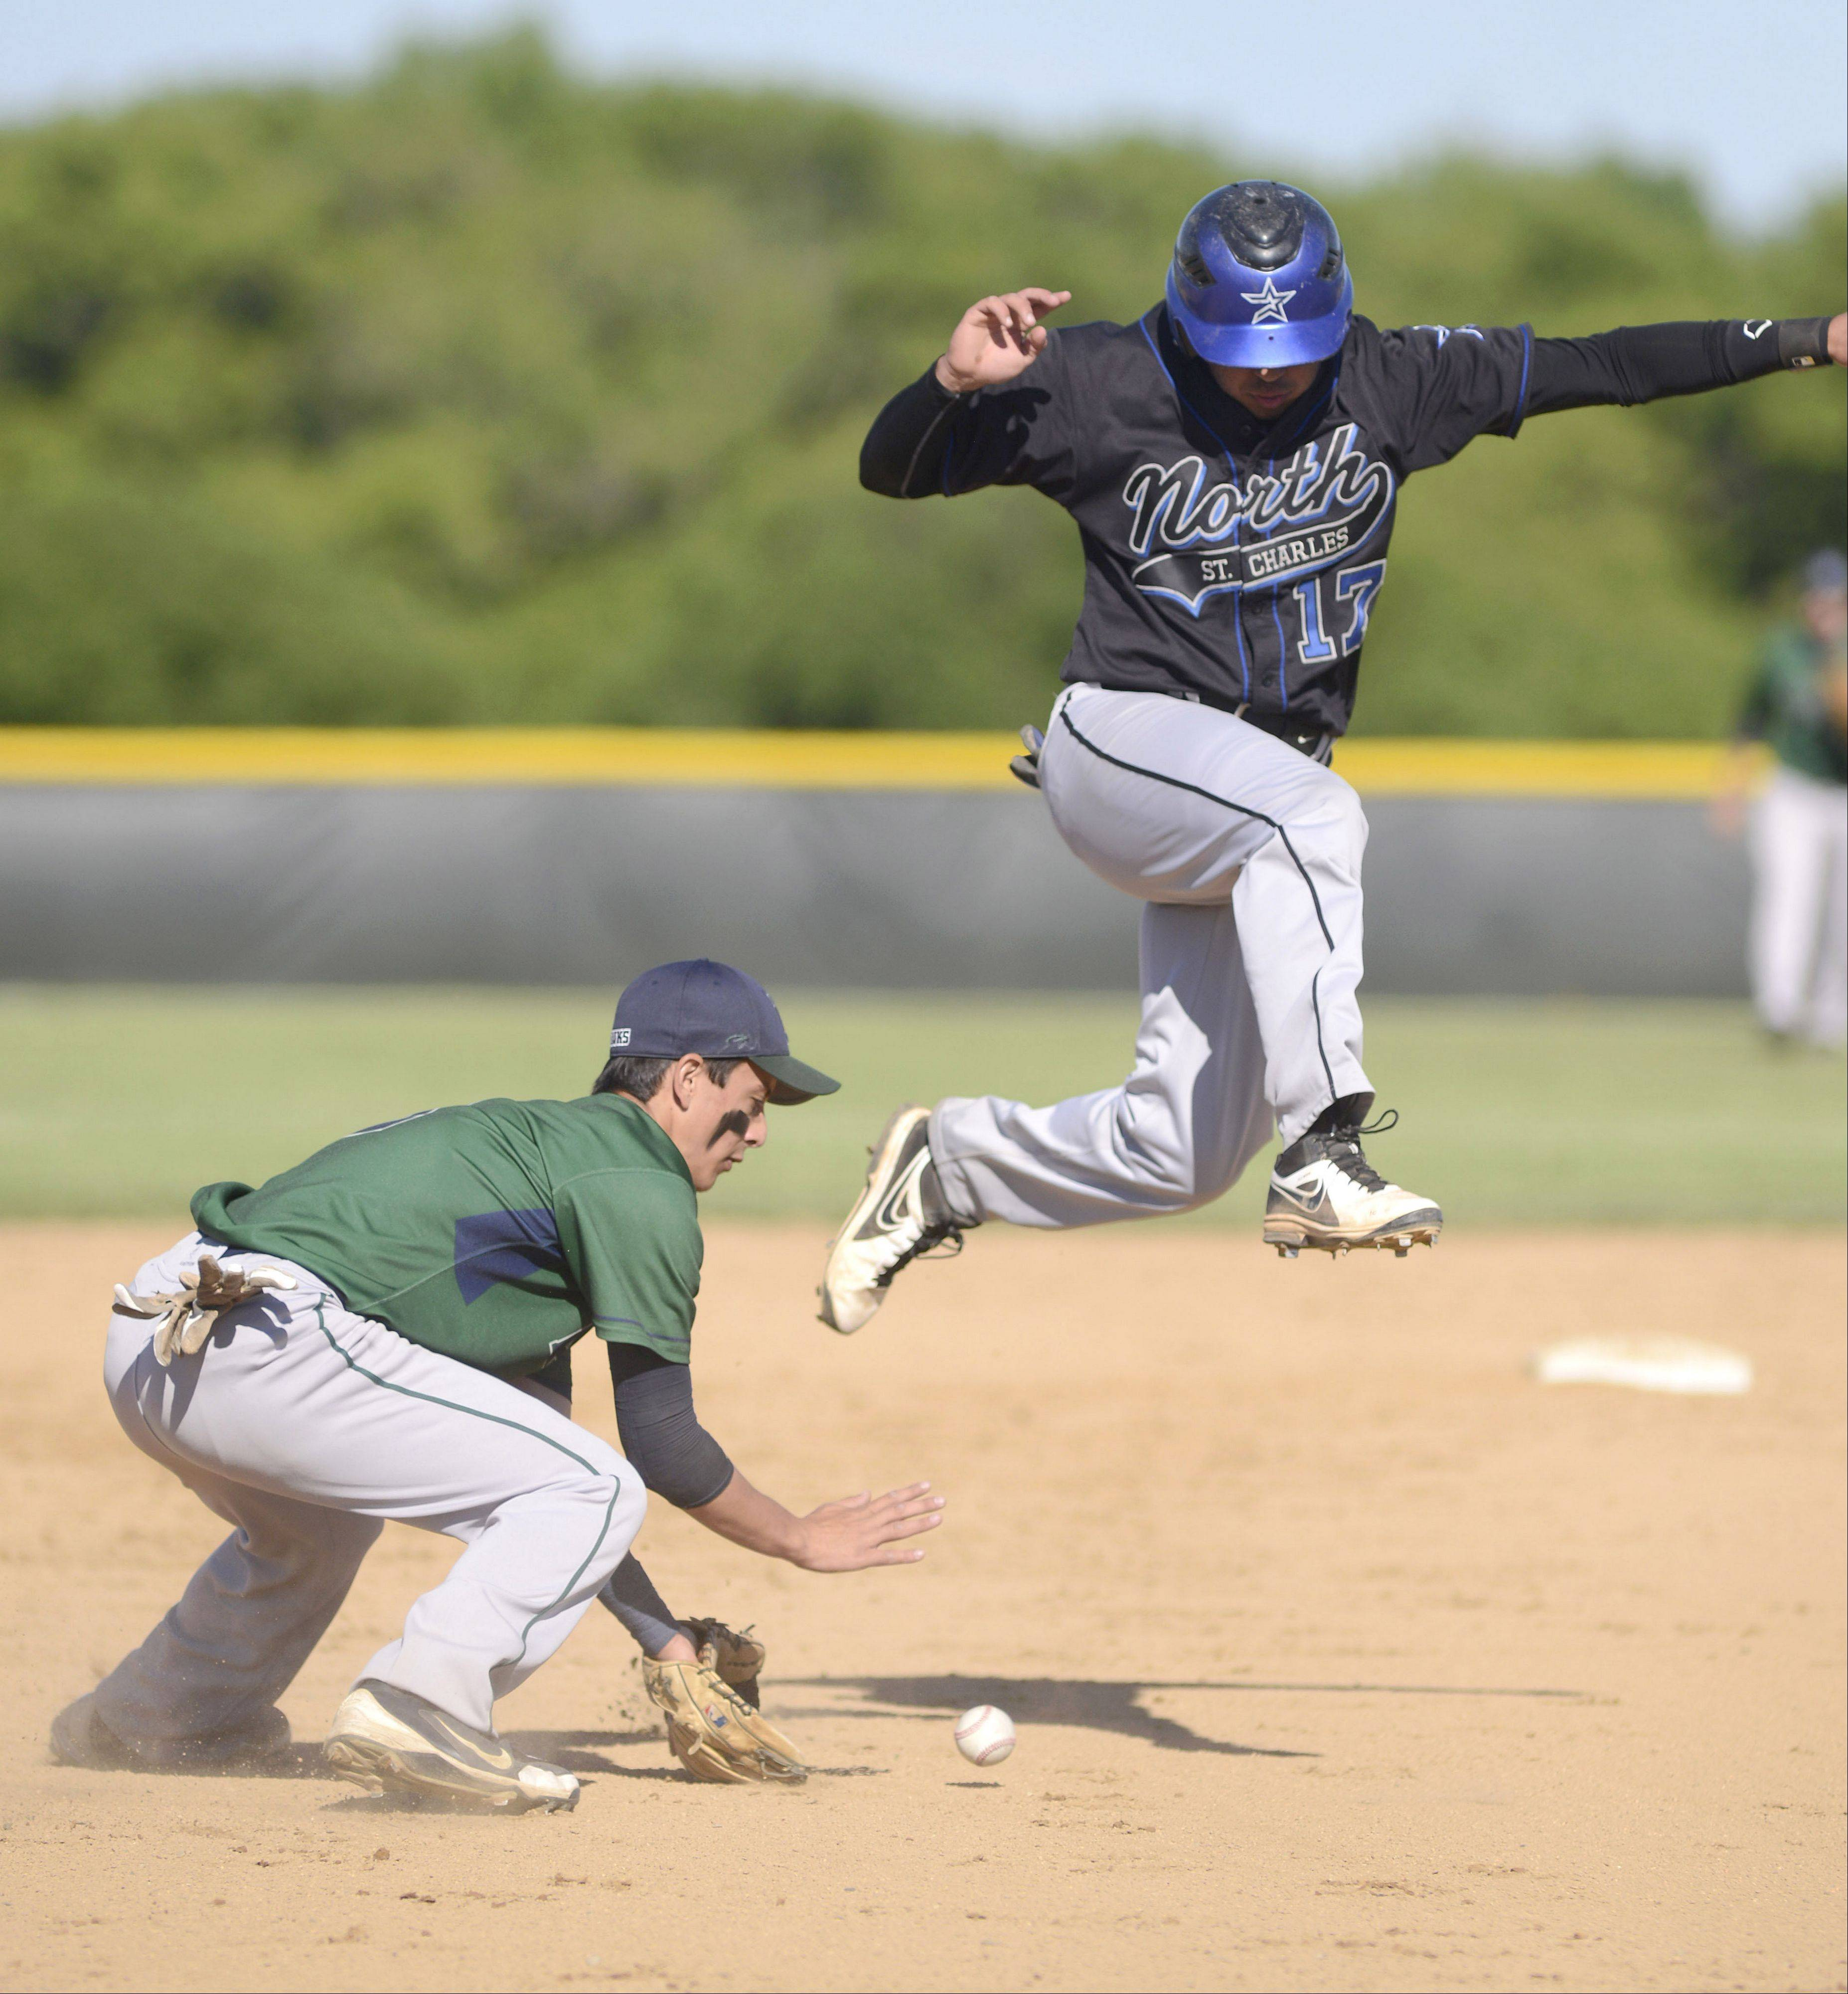 Bartlett's Matt Vitulli scoops up the ball to throw to first as St. Charles North's Frankie Farry leaps to avoid a collision on the way to third base Friday.